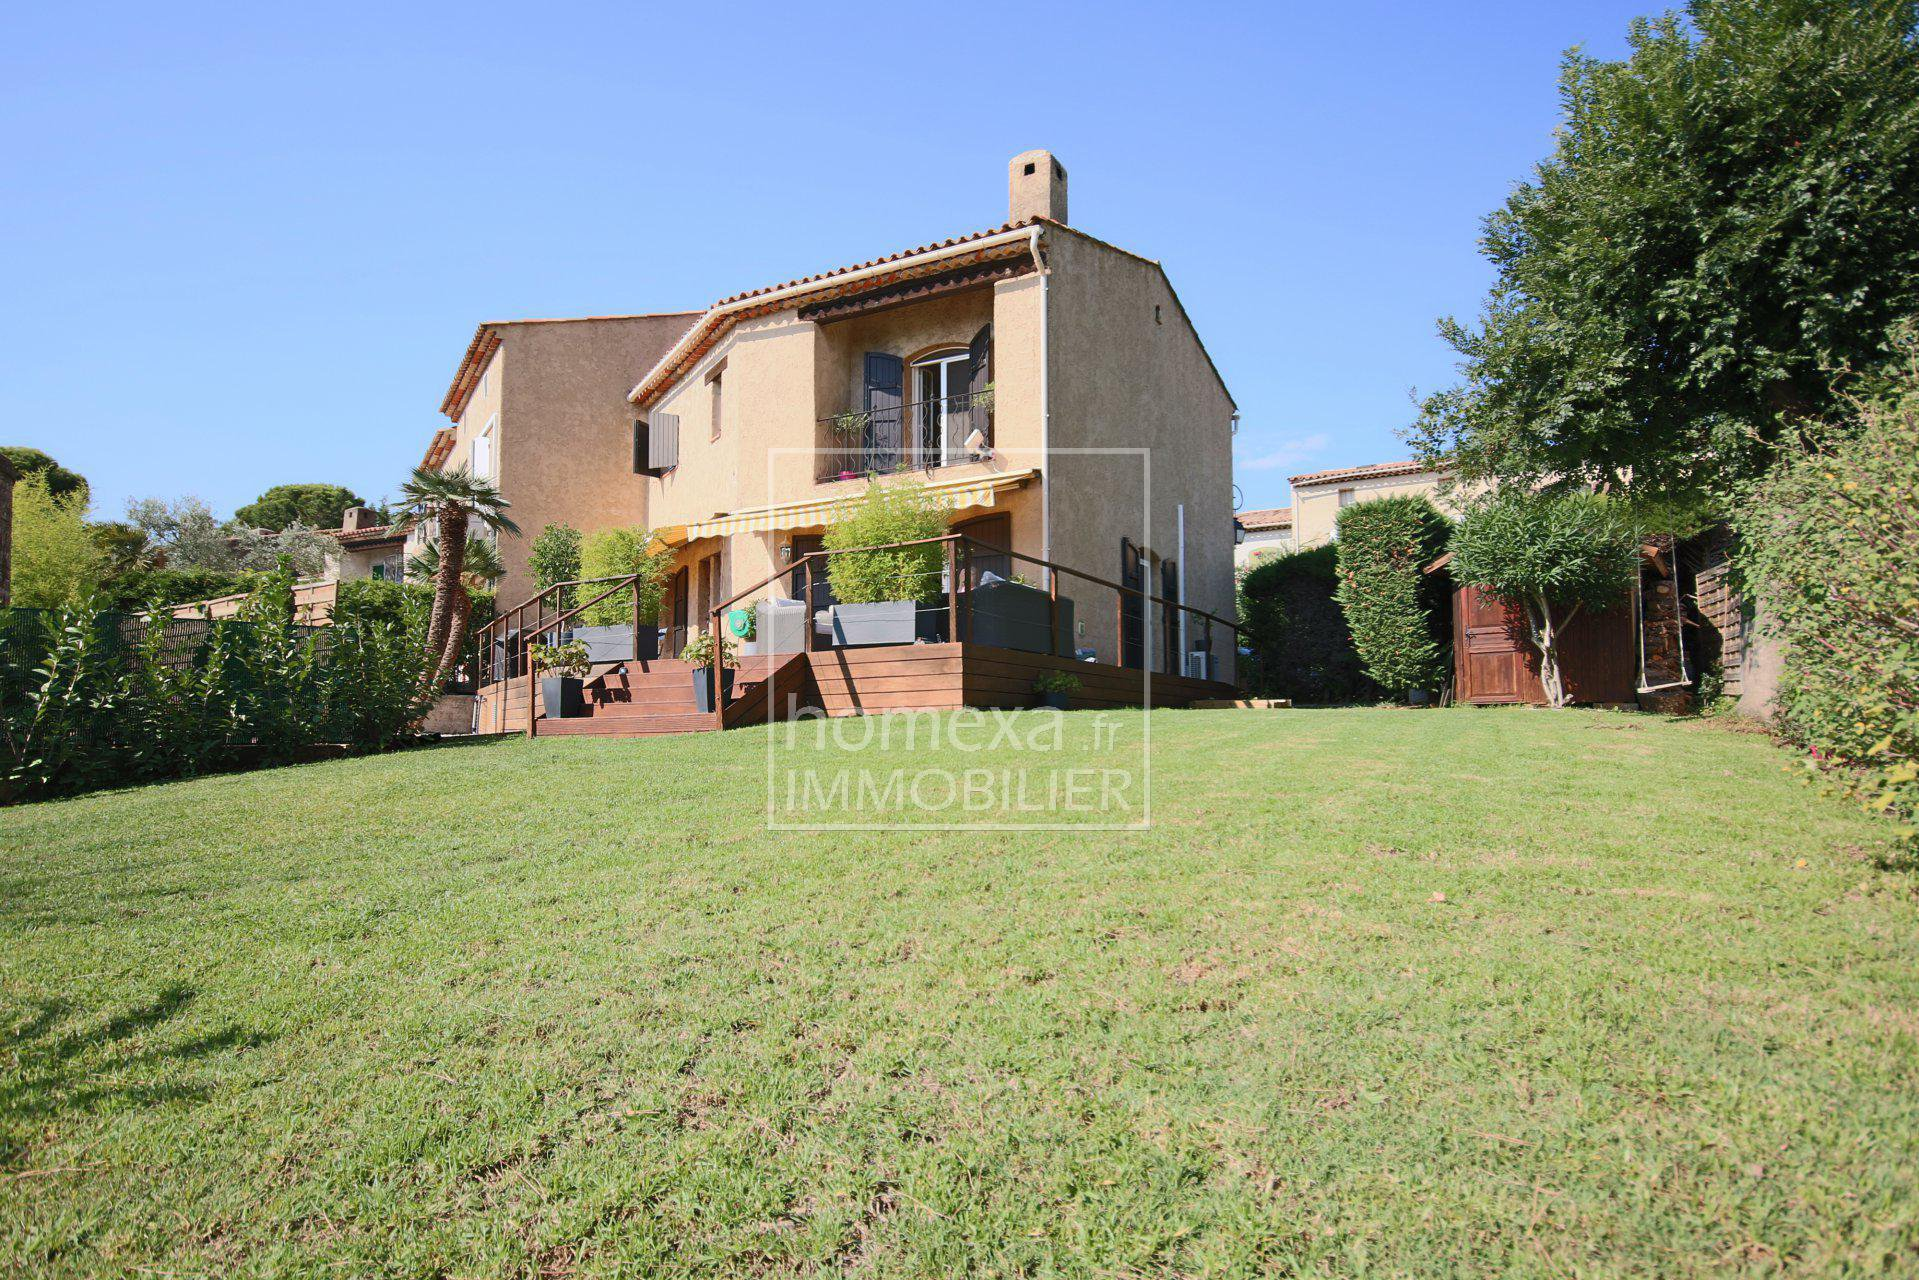 French riviera holiday rental : house in Antibes in private gated domain with pool and tennis